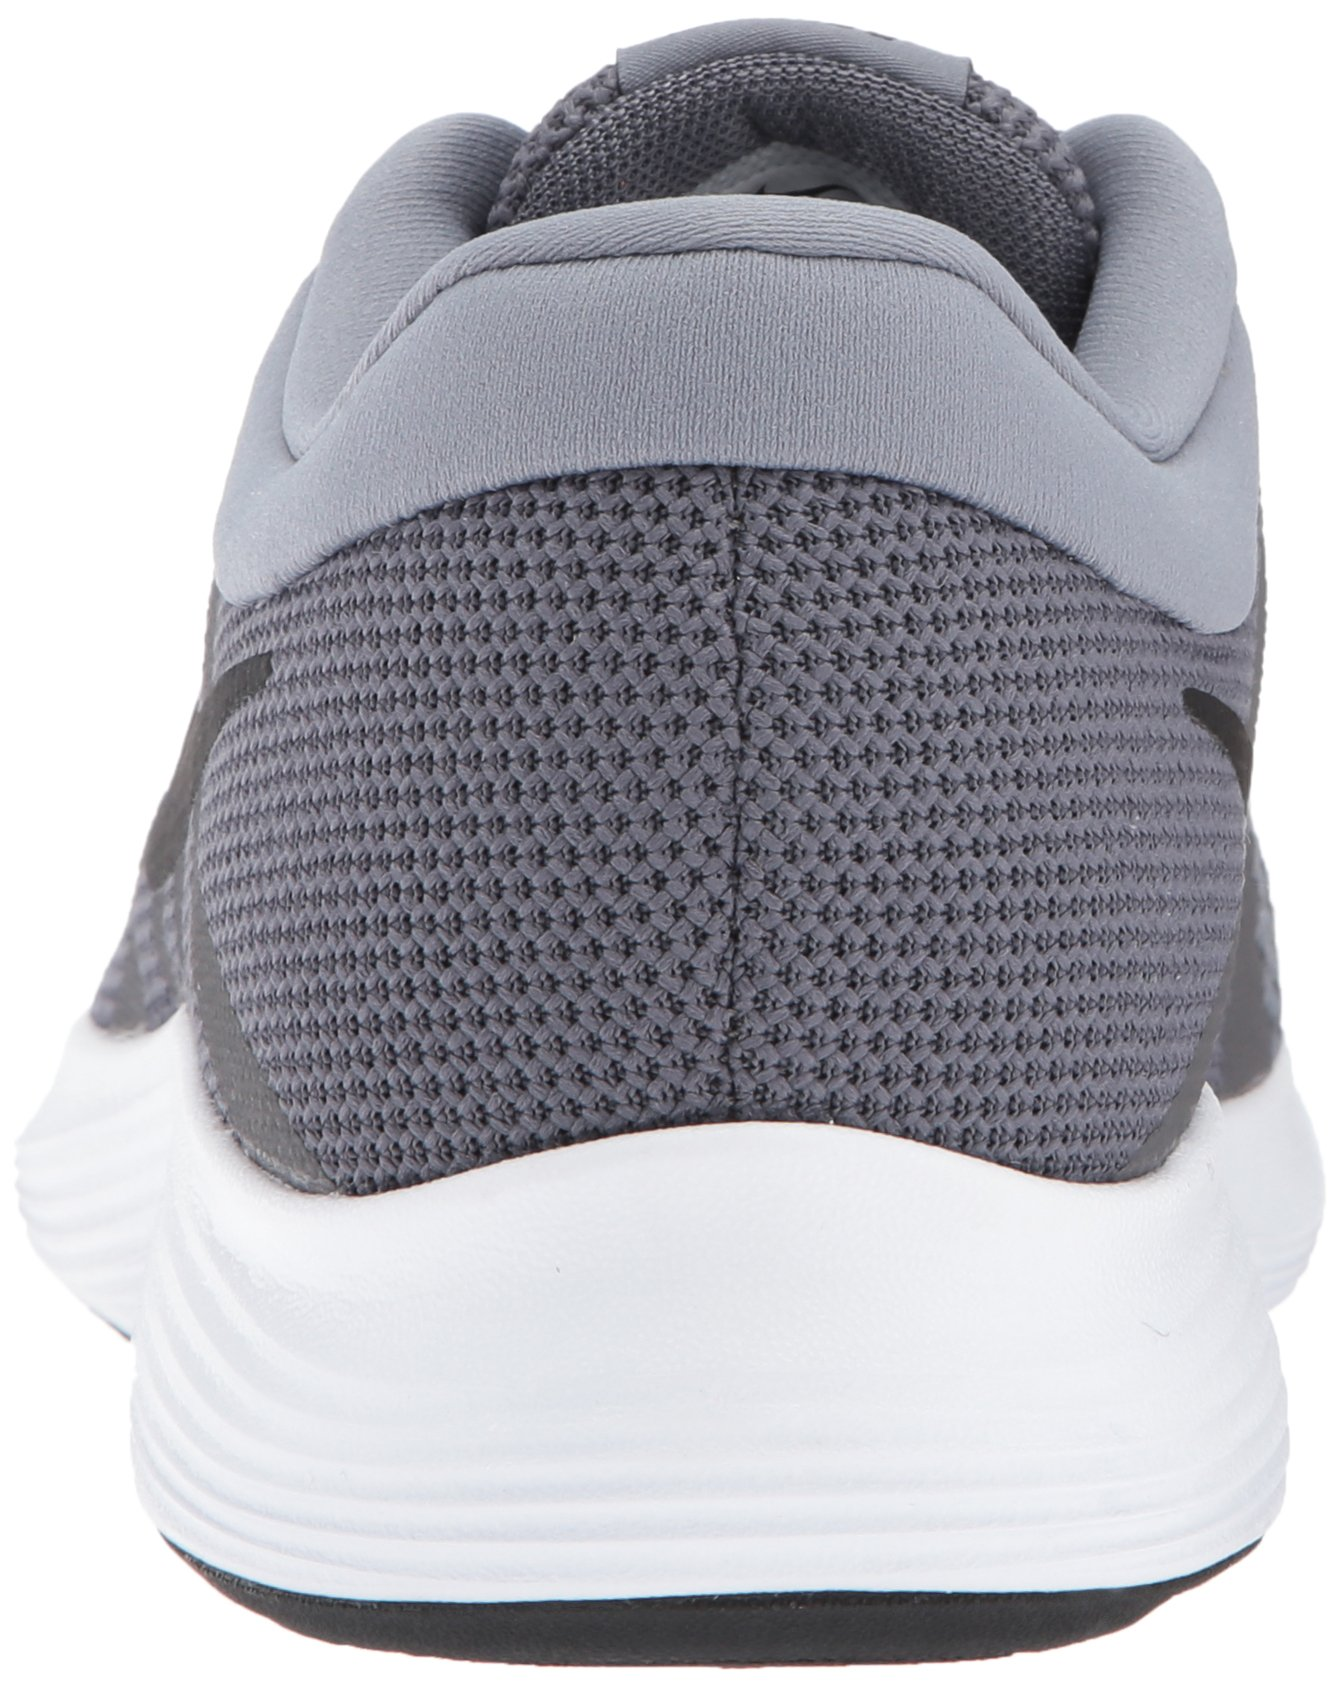 Nike Men's Revolution 4 Running Shoe, Dark Black-Cool Grey/White, 6 Regular US by Nike (Image #2)